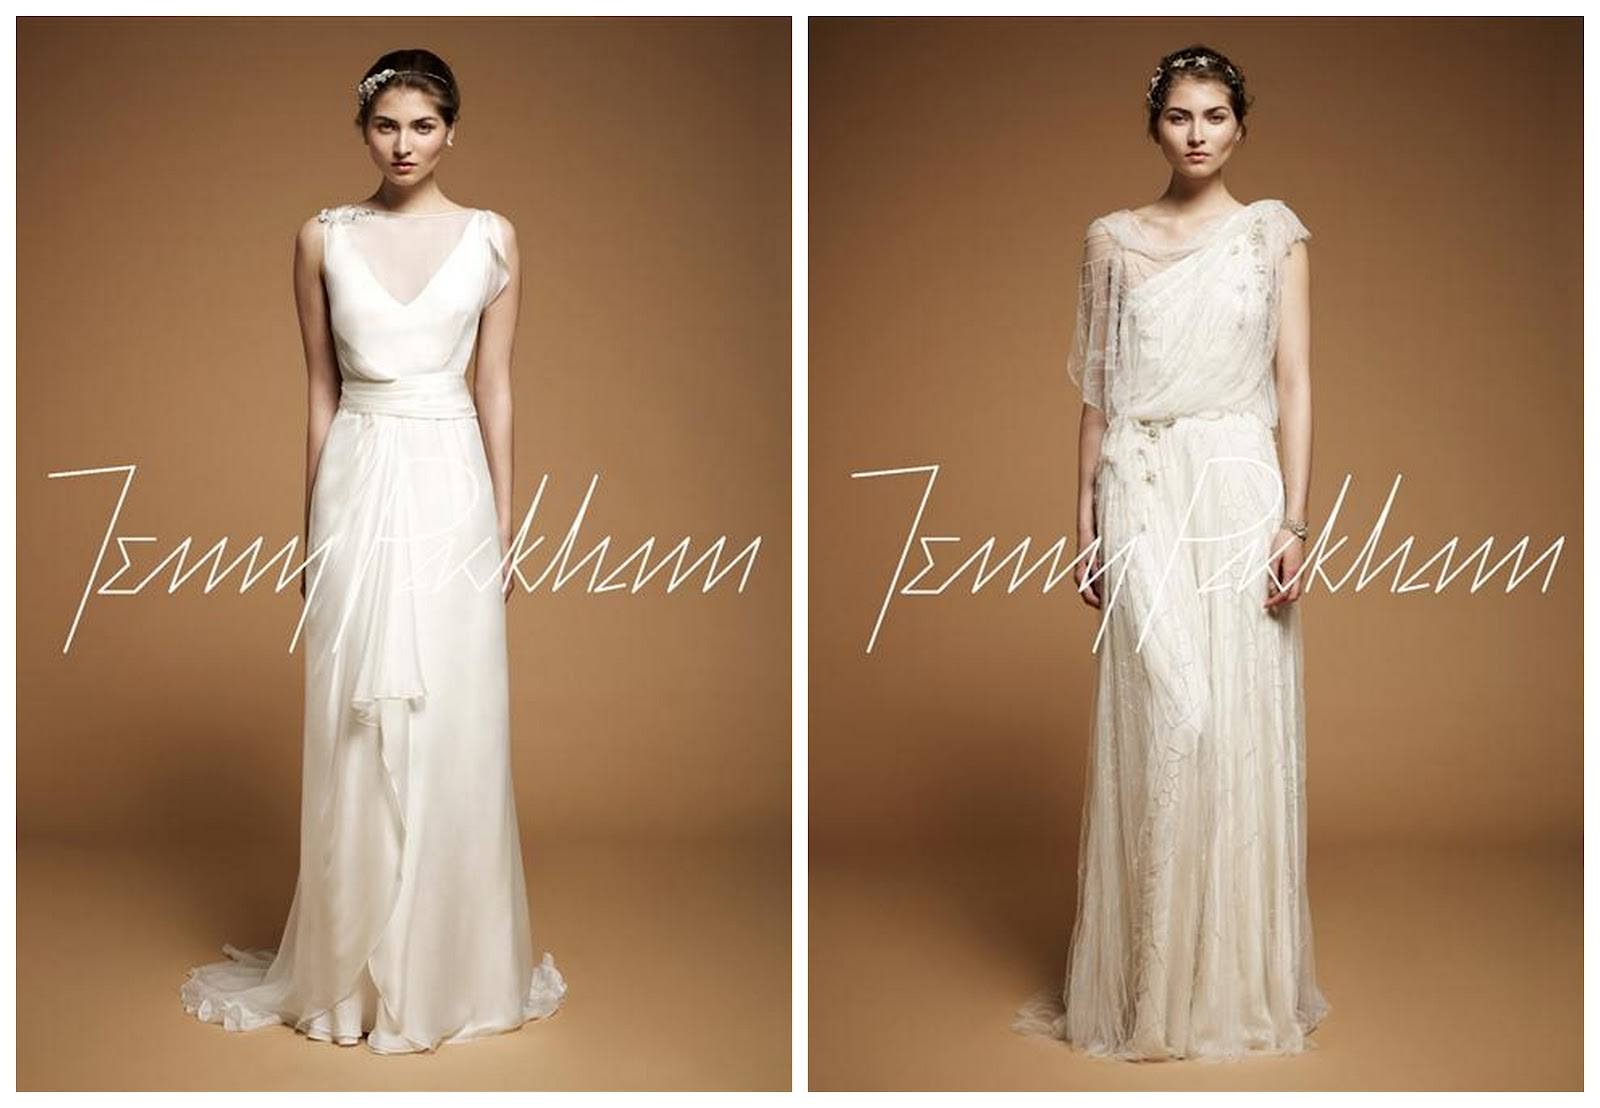 sparkly wedding dresses by jenny packham